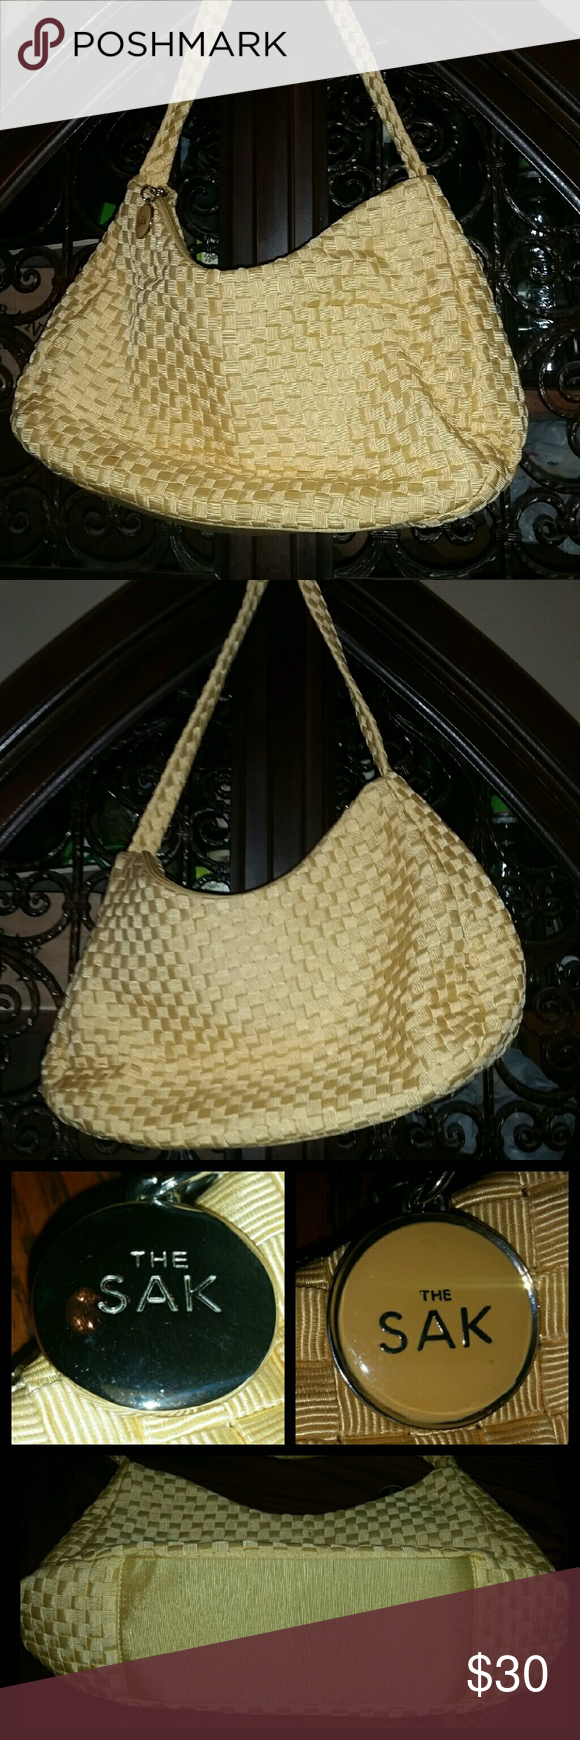 """The Sak Large Woven Banana Yellow Shoulder Bag Like new condition large, beautiful, banana yellow, The Sak Woven Shoulder Bag.  This bag is new without tags without any stains, marks,  or noticeable wear.   Woven pattern exterior with cotton interior lining.   Back wall zip pocket and double slip pockets  The Sak logo hang-tag In Chrome and coordinating yellow enamel. Measures 15"""" L x 5"""" W x 8"""" H with a 12 """" drop shoulder strap. The Sak Bags Shoulder Bags"""